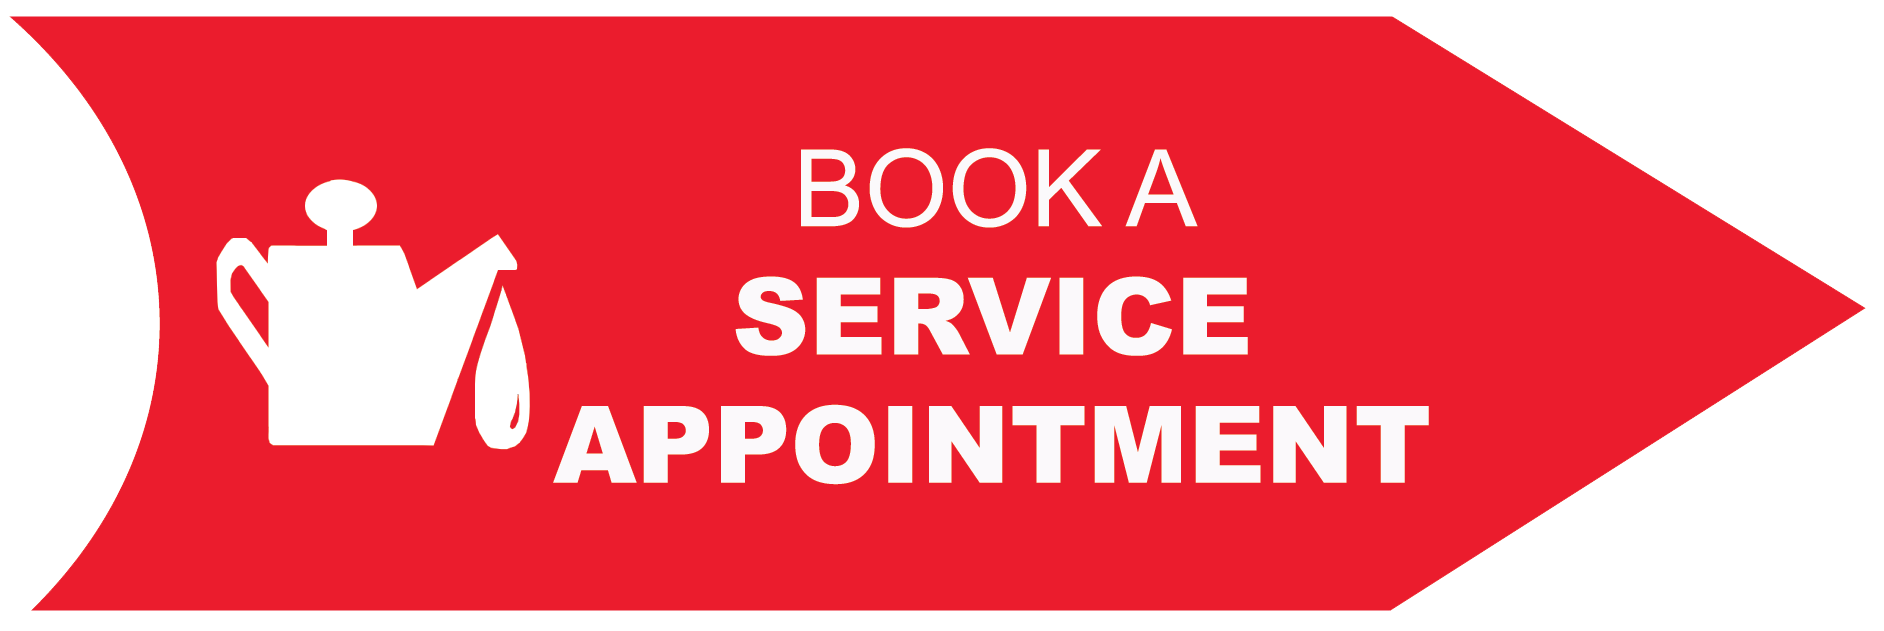 Toyota Service Appointment >> Book A Service Appointment Destination Toyota